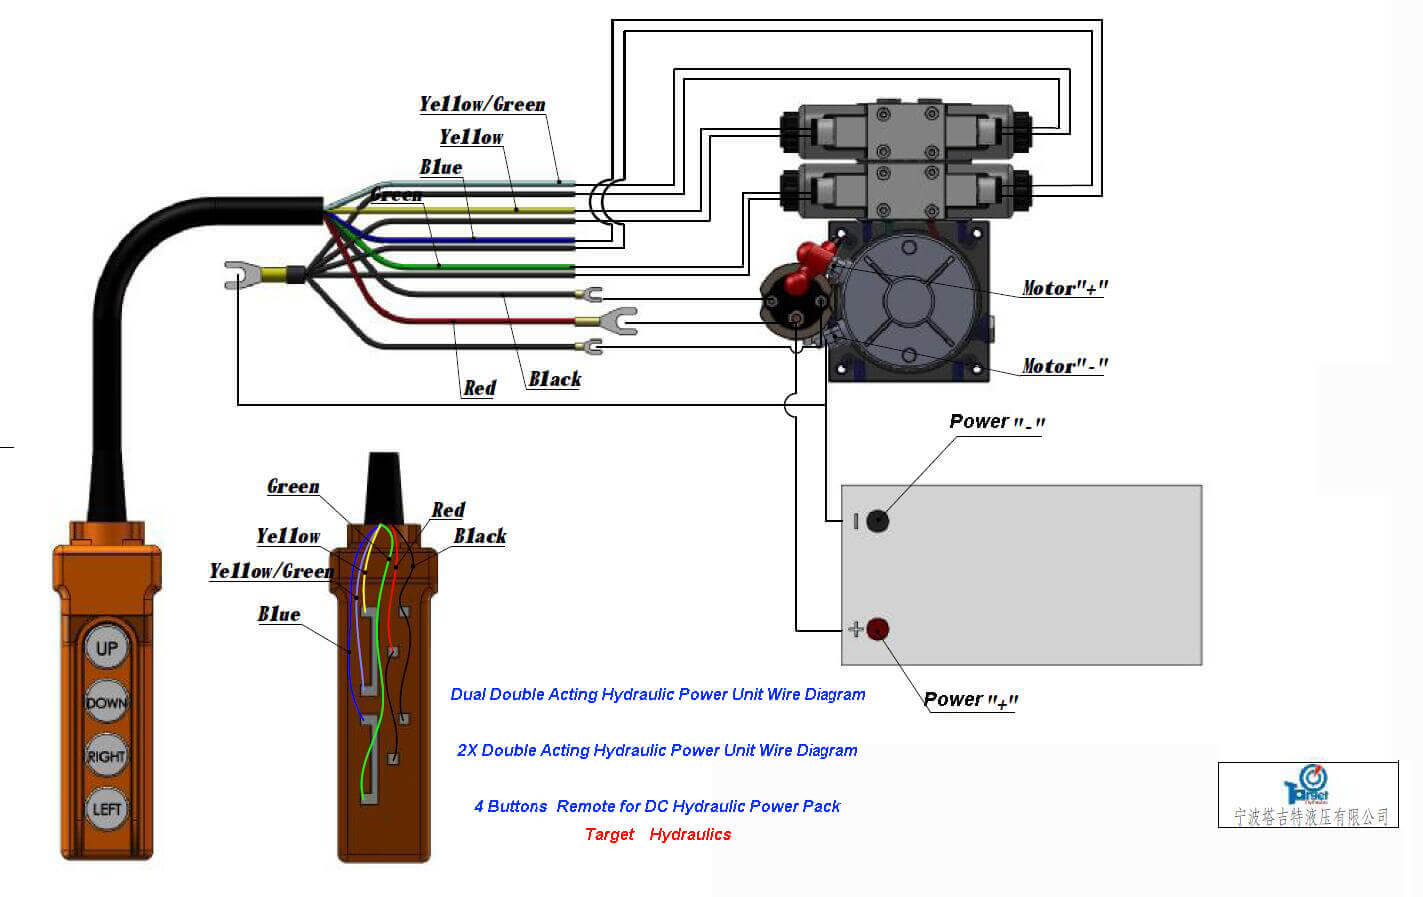 ... dual-double-acting-hydraulic-cylinder-power-units-wiring-